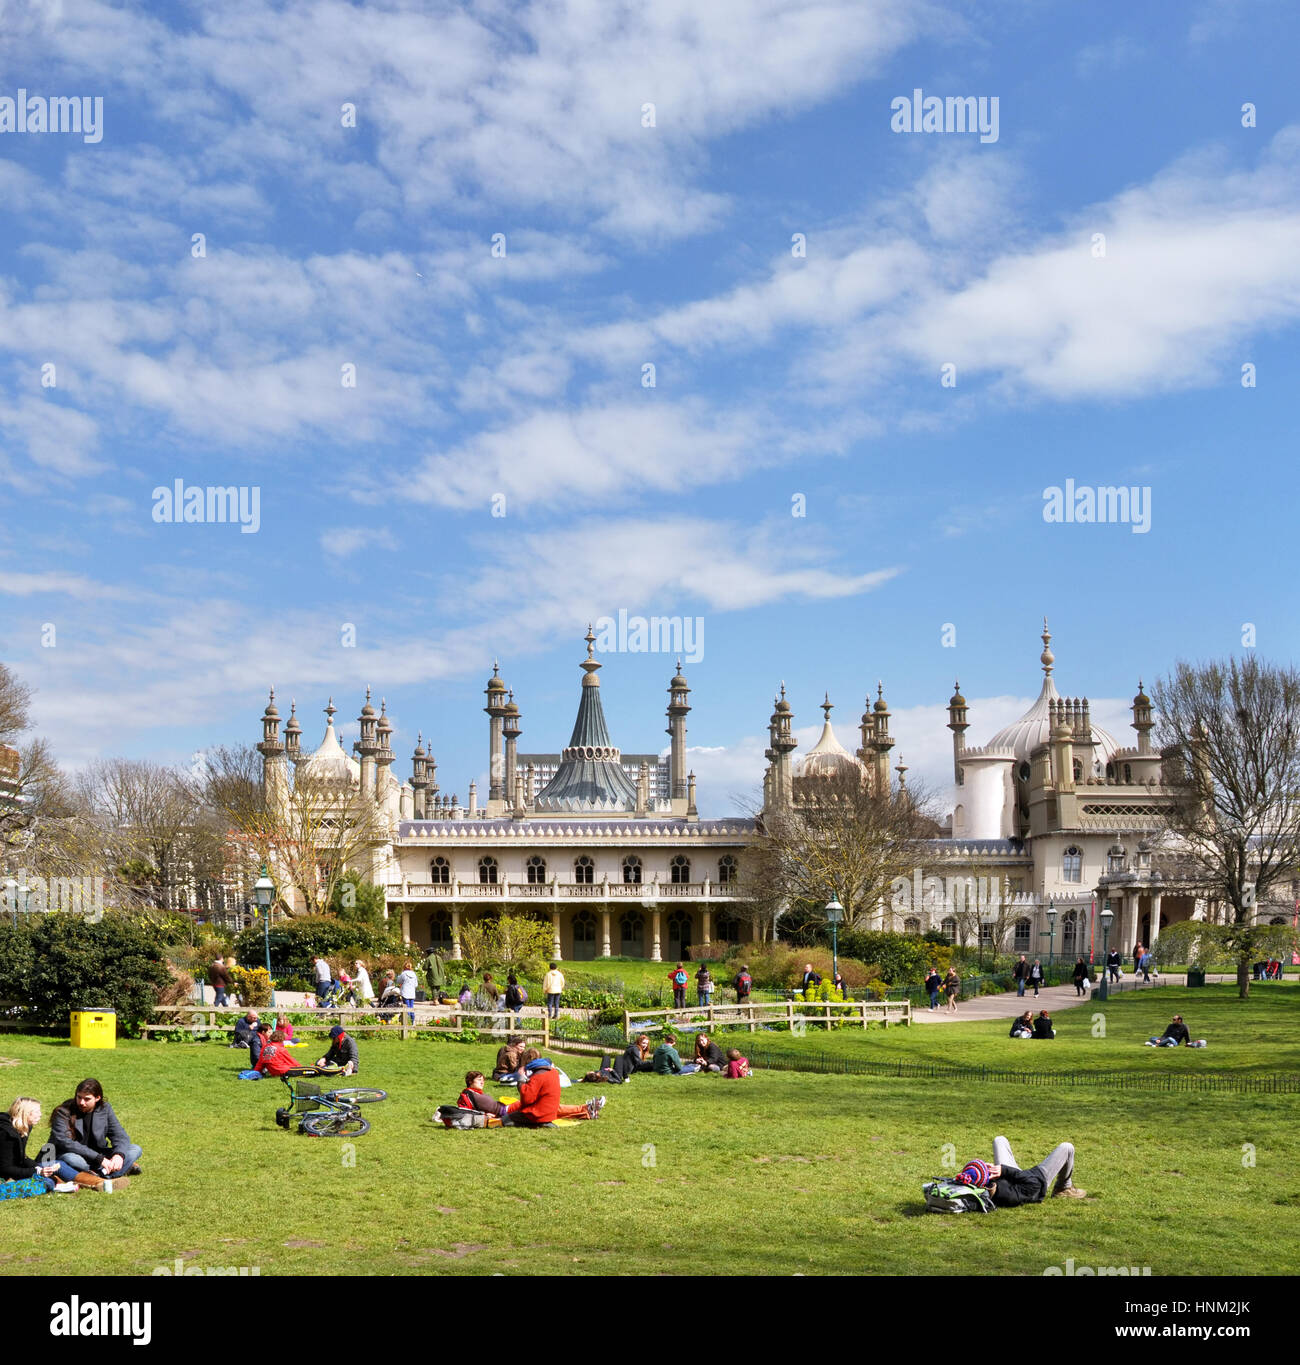 Brighton, United Kingdom - April 16, 2012: Vertical panorama view of tourists pinicing on the grass outside the - Stock Image